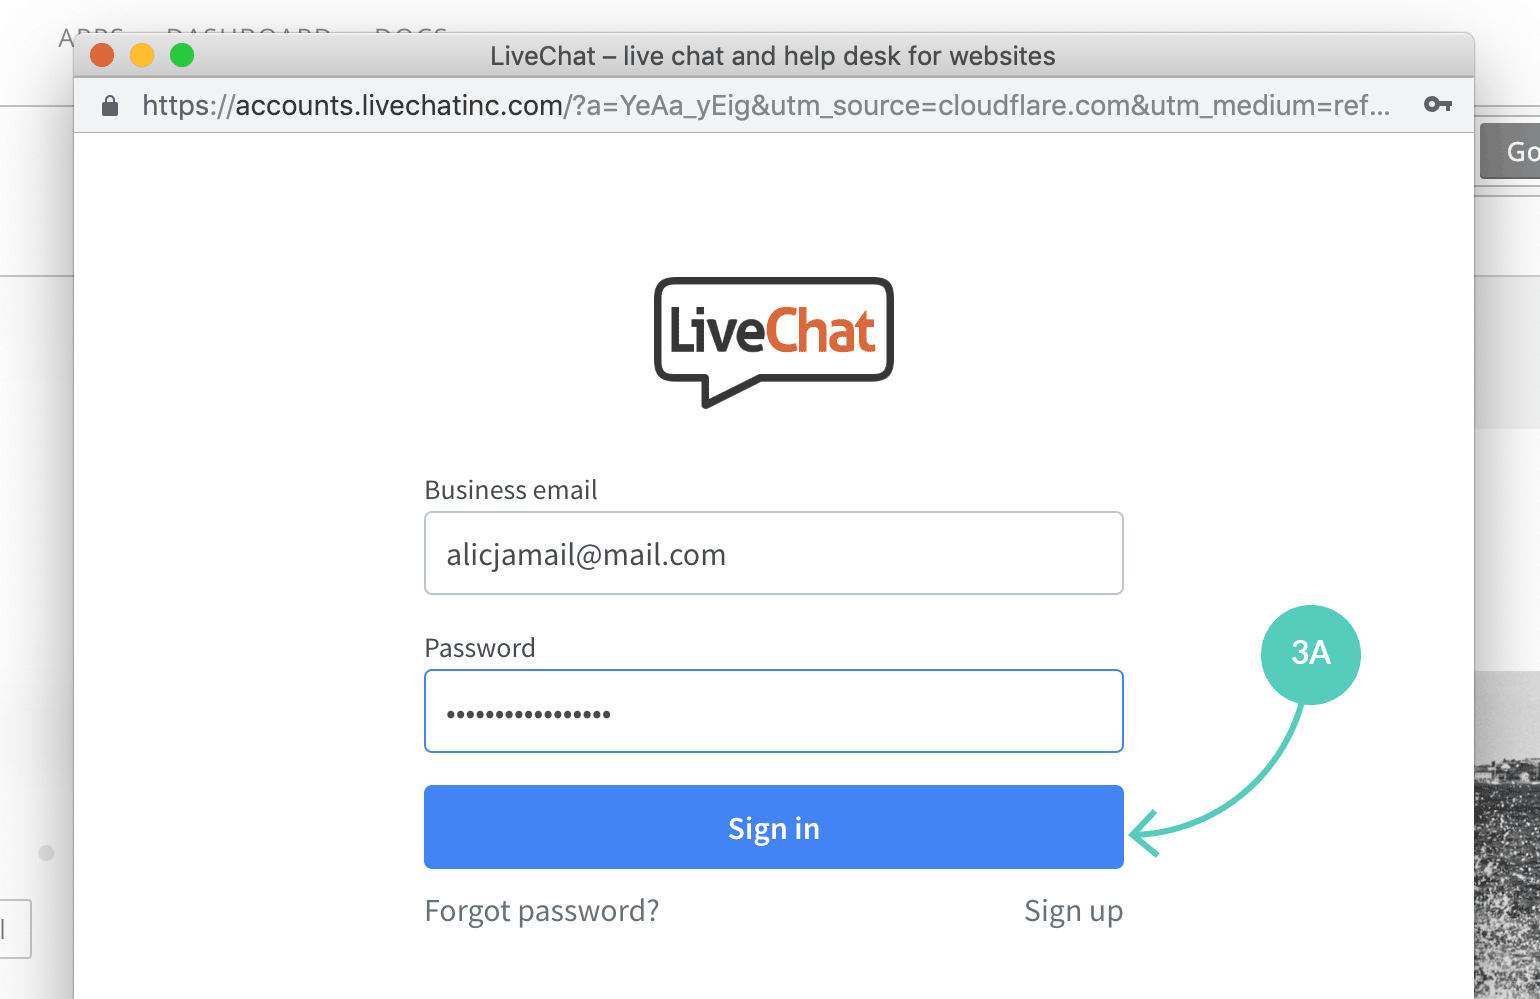 LiveChat sign in page